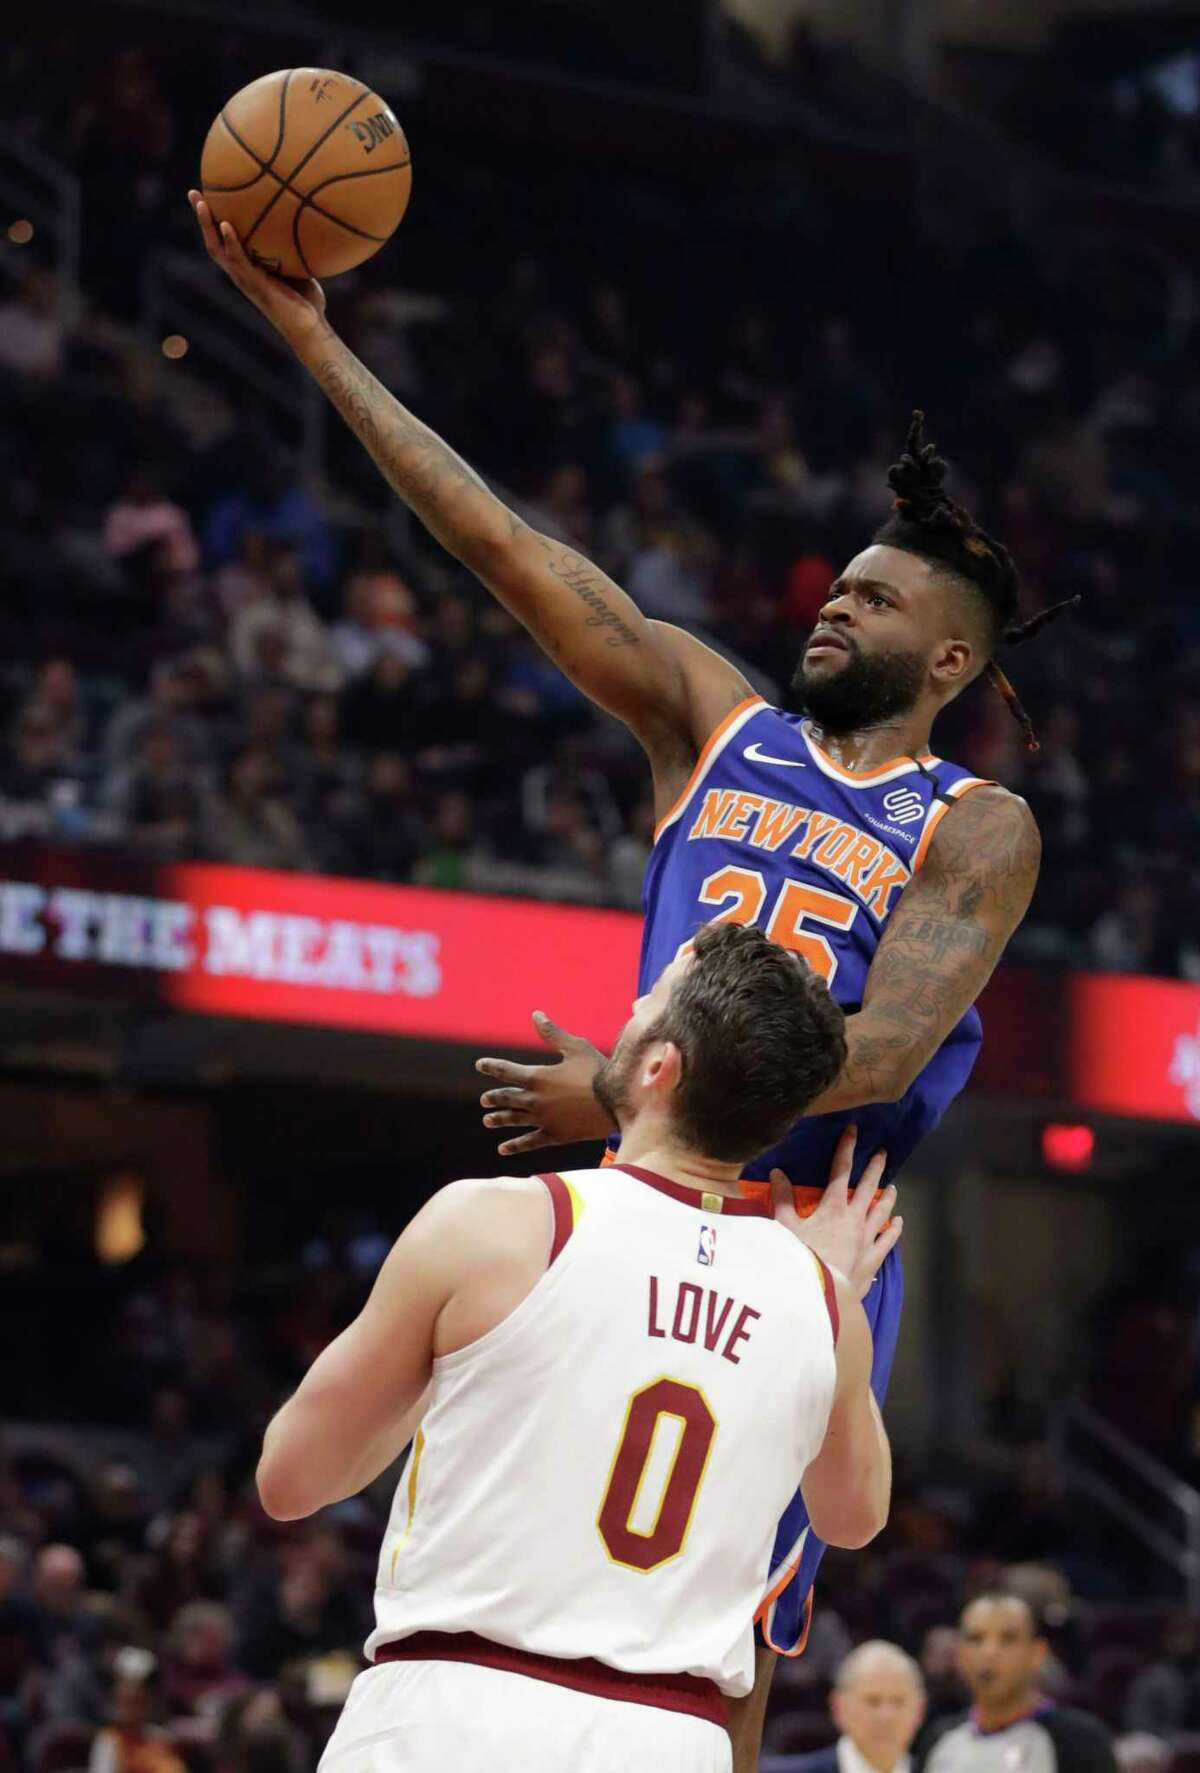 New York Knicks' Reggie Bullock (25) drives to the basket against Cleveland Cavaliers' Kevin Love (0) in the second half of an NBA basketball game, Monday, Feb. 3, 2020, in Cleveland. New York won 139-134 in overtime. (AP Photo/Tony Dejak)